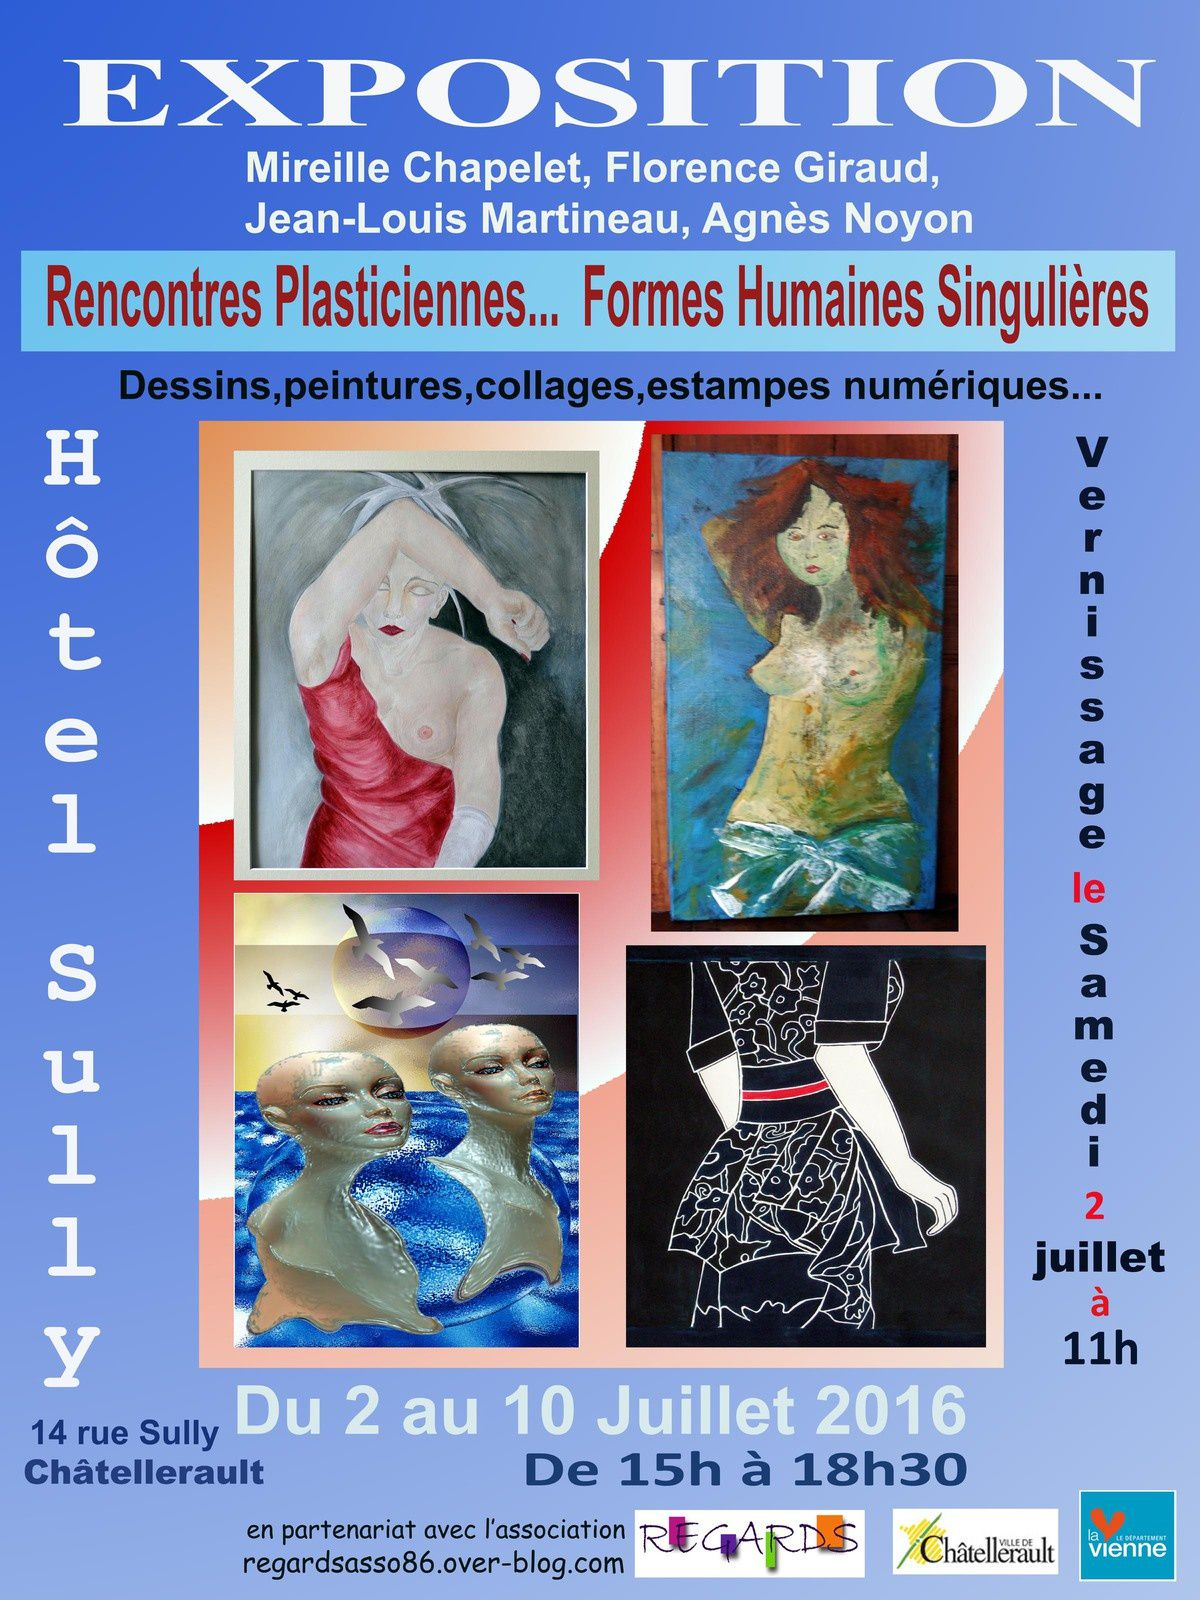 Synchronicite des rencontres humaines